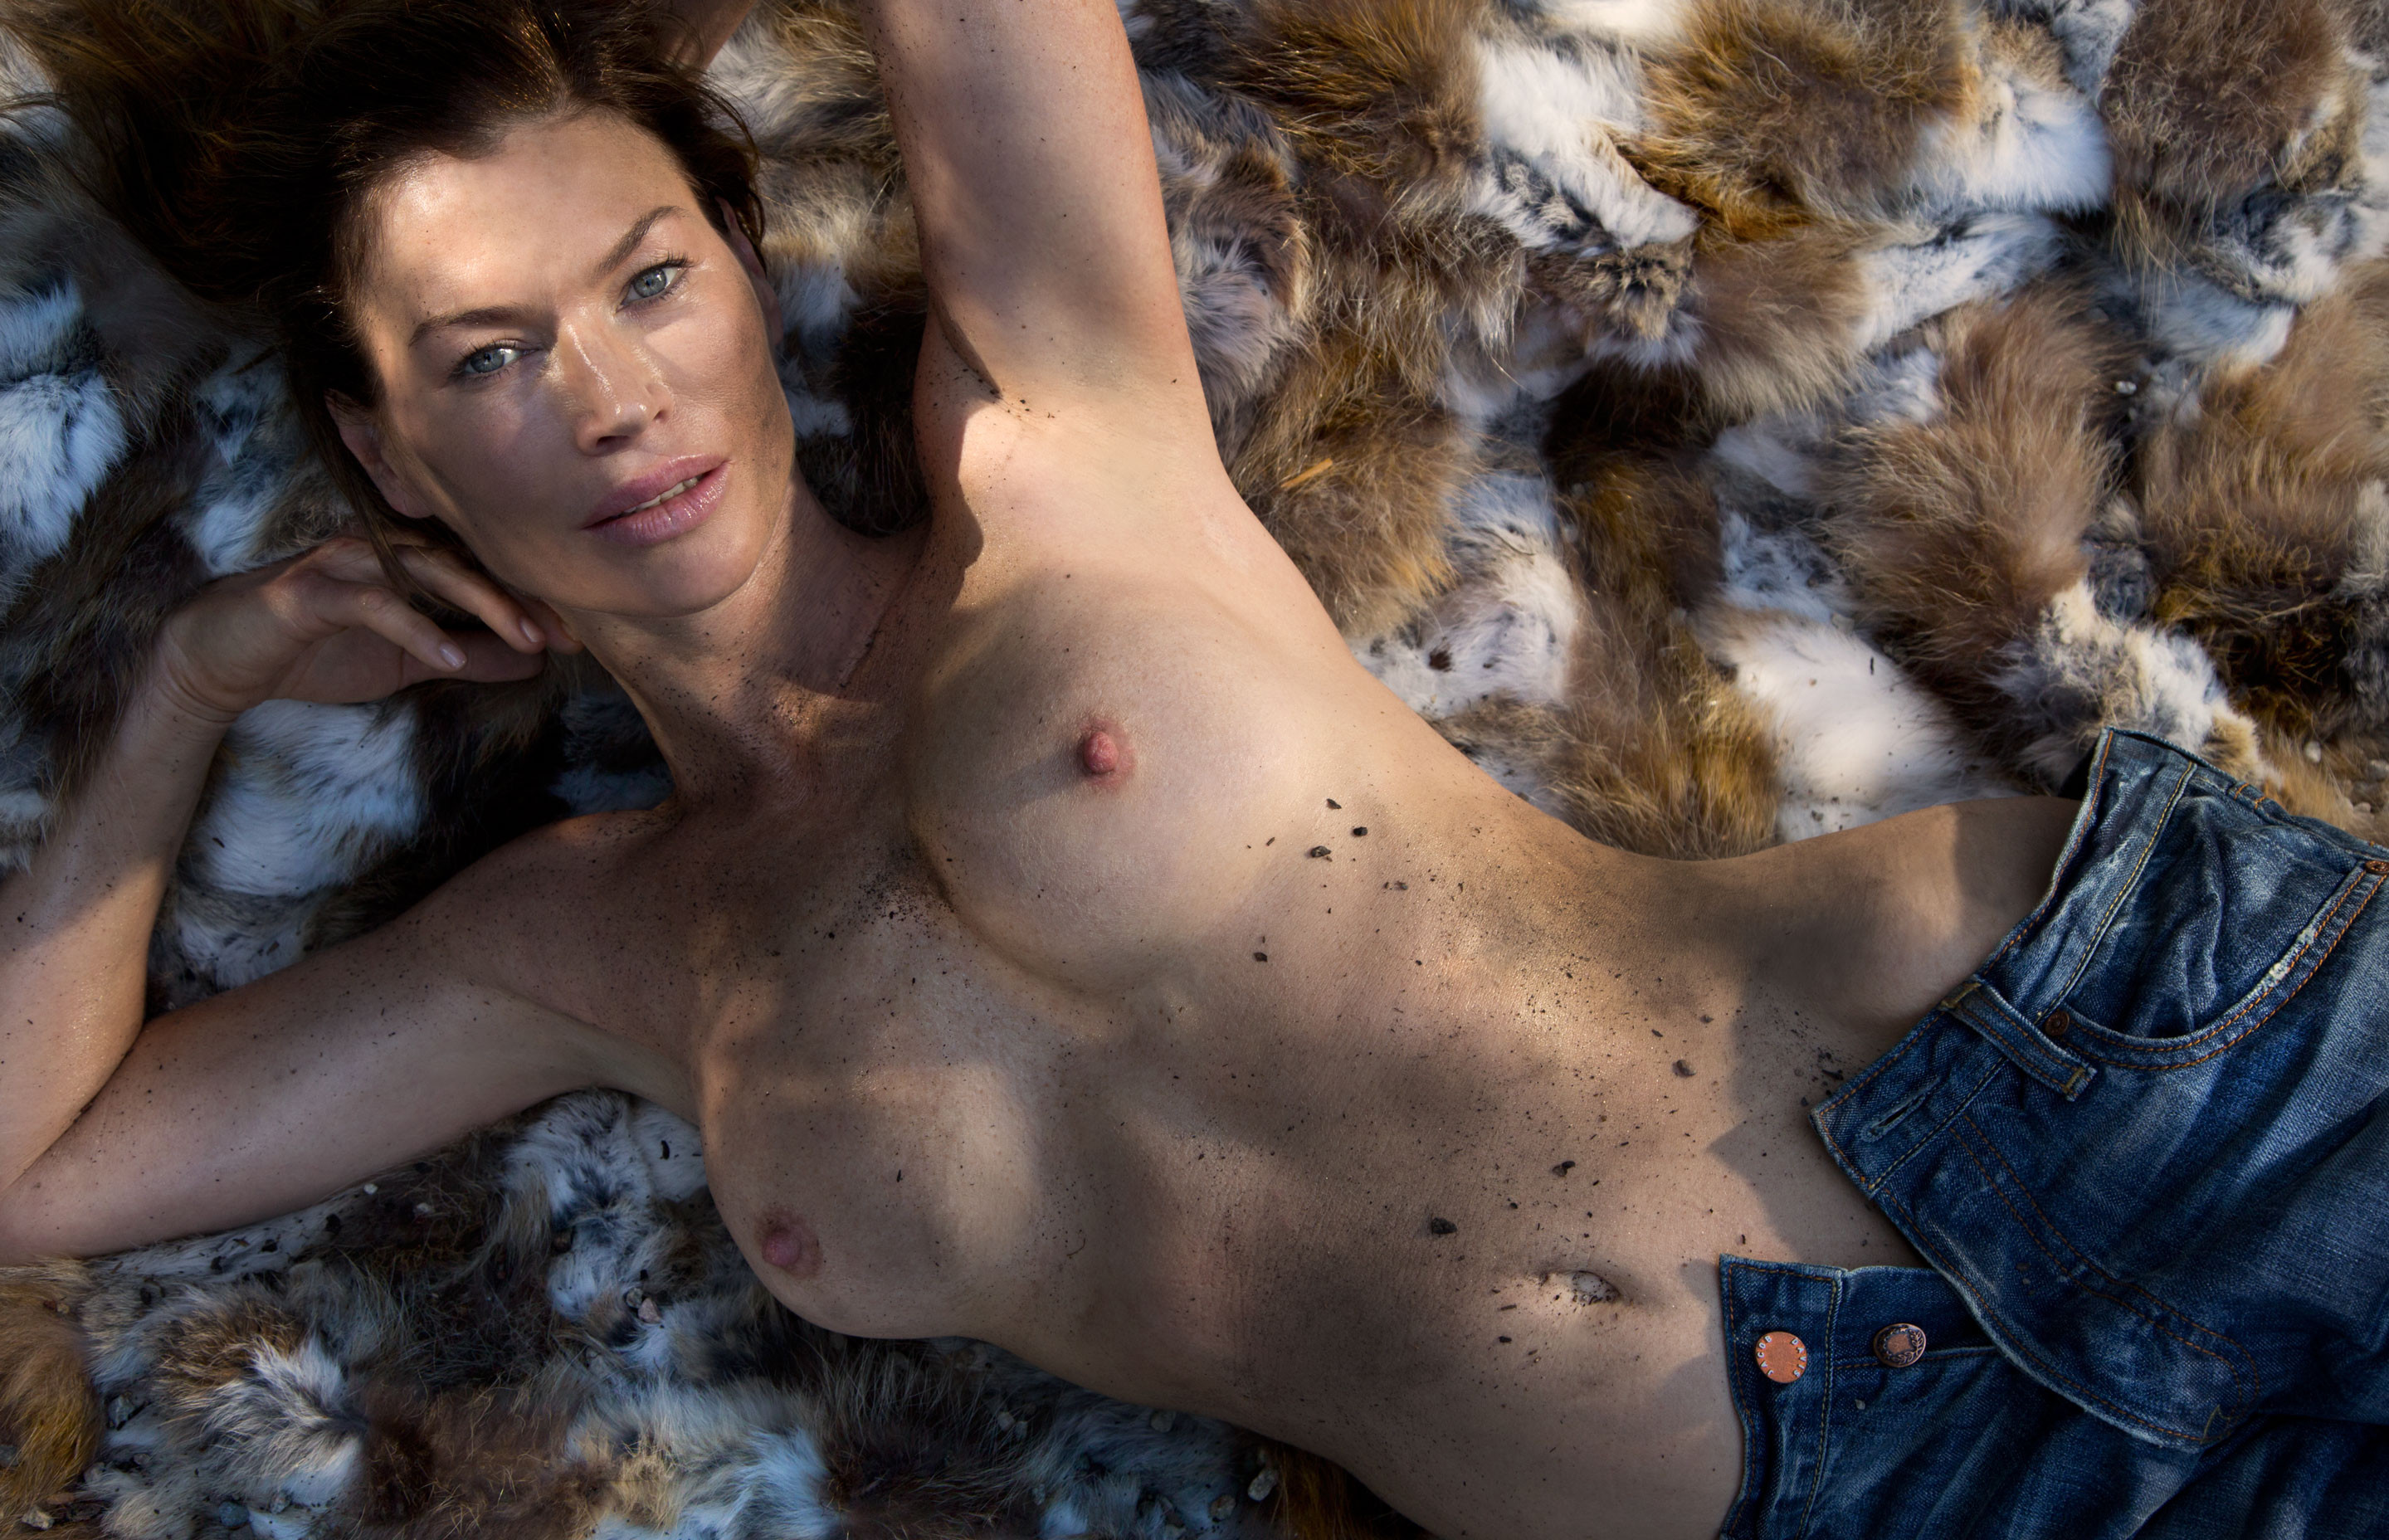 Carre Otis Topless 6 TheFappening.nu